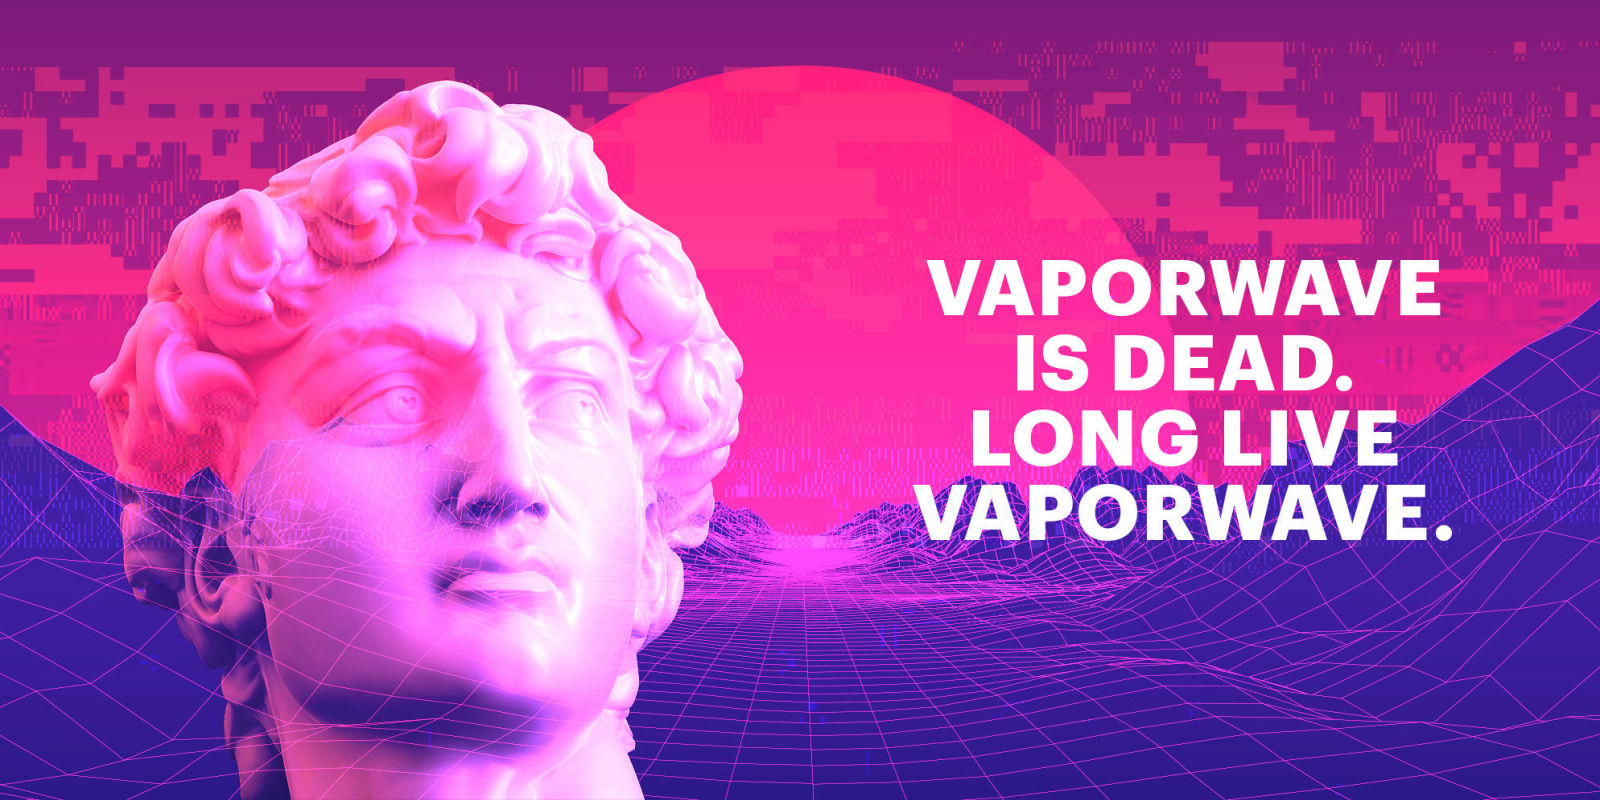 What Happened to Vaporwave?